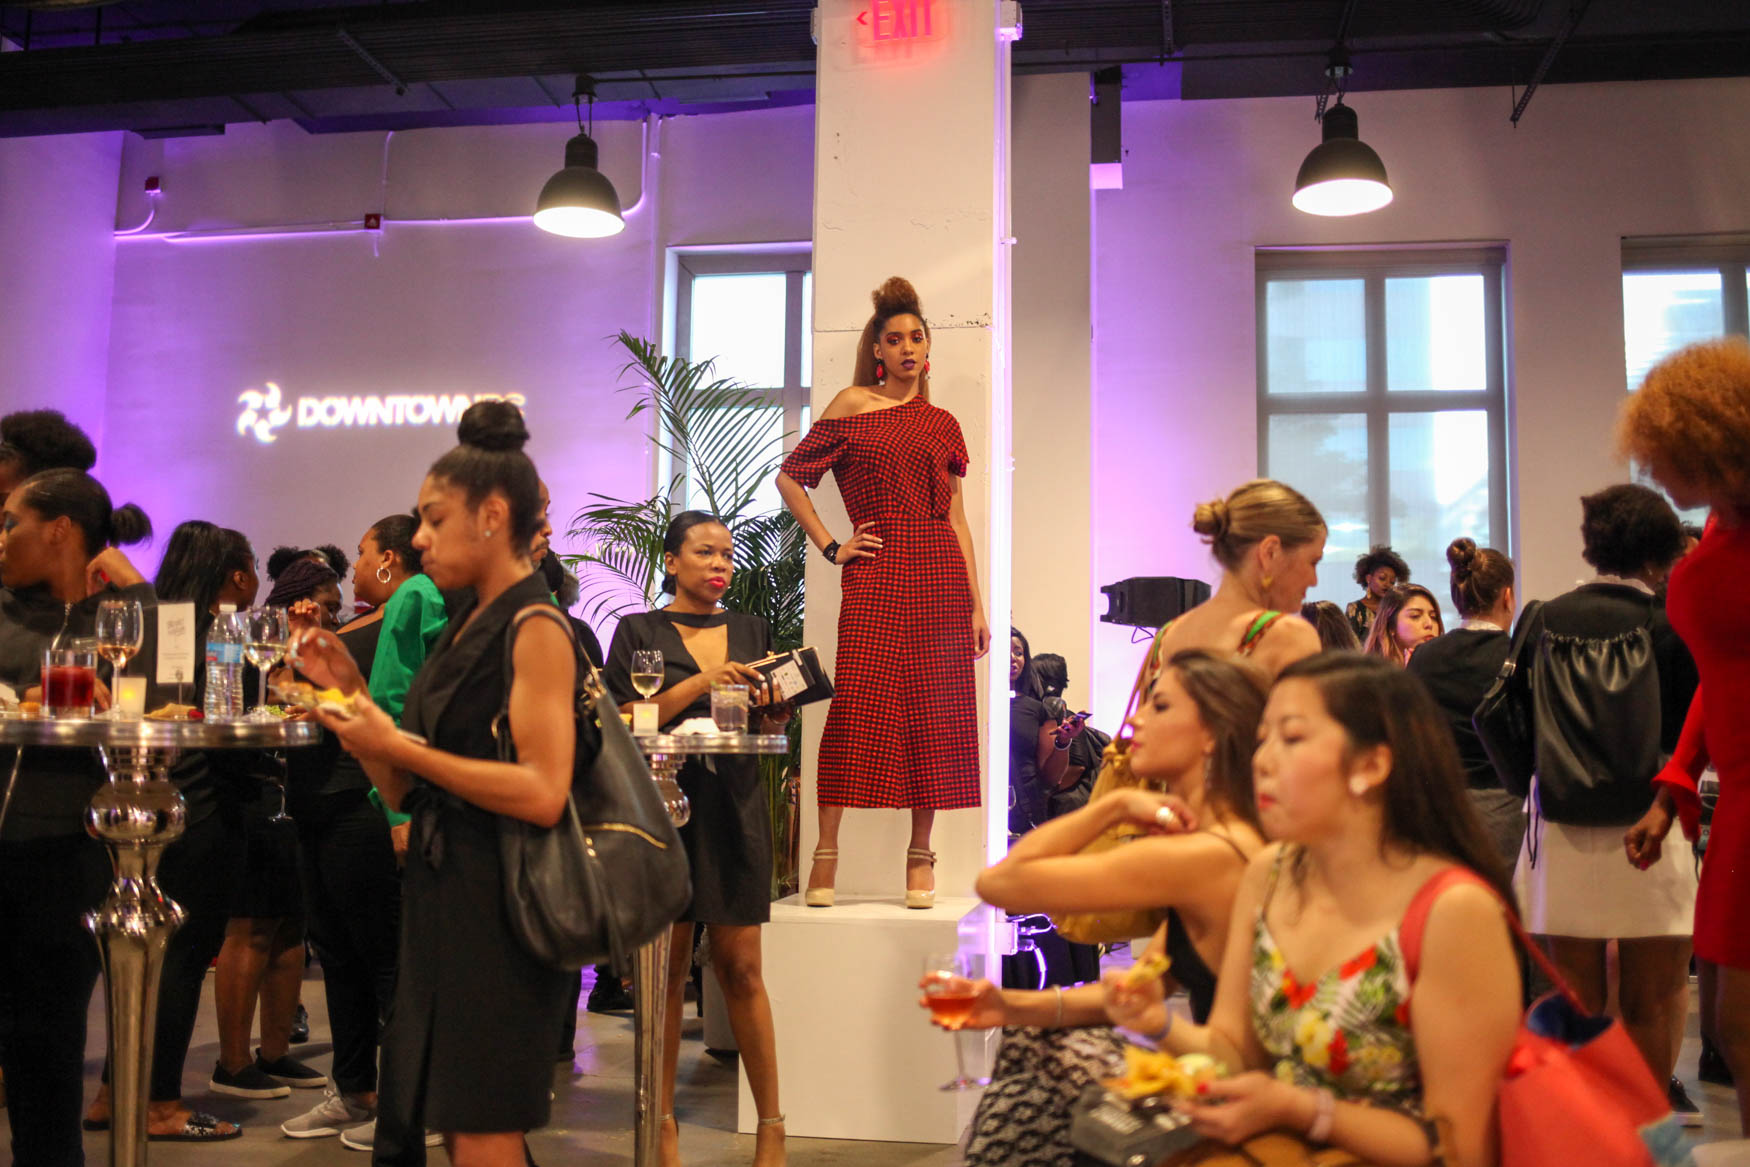 Nearly a dozen designers debuted their collections at the District of Fashion runway show on September 5. The invite-only show was hosted by the DowntownDC Business Improvement District, as a way to bring consumers and creators to the heart of D.C. The looks ranged from swimwear to high fashion and guests had the chance to mingle, flaunt their best looks and enjoy snacks and cocktails. (Amanda Andrade-Rhoades/DC Refined)